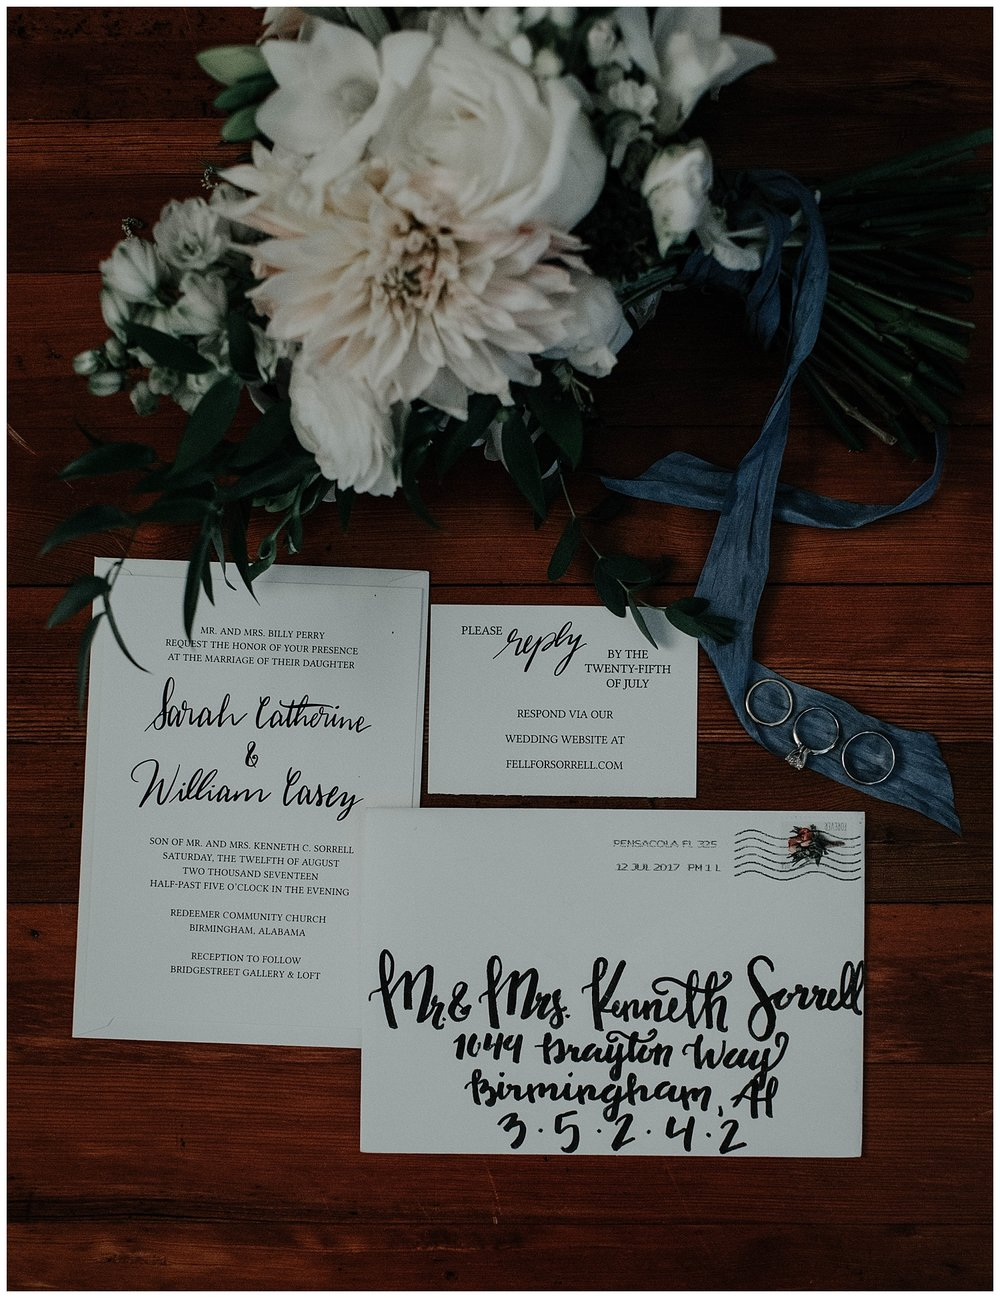 Madalynn Young Photography | Sarah Catherine + Will | Bridge Street Gallery and Loft | Atlanta Wedding Photographer_0039.jpg